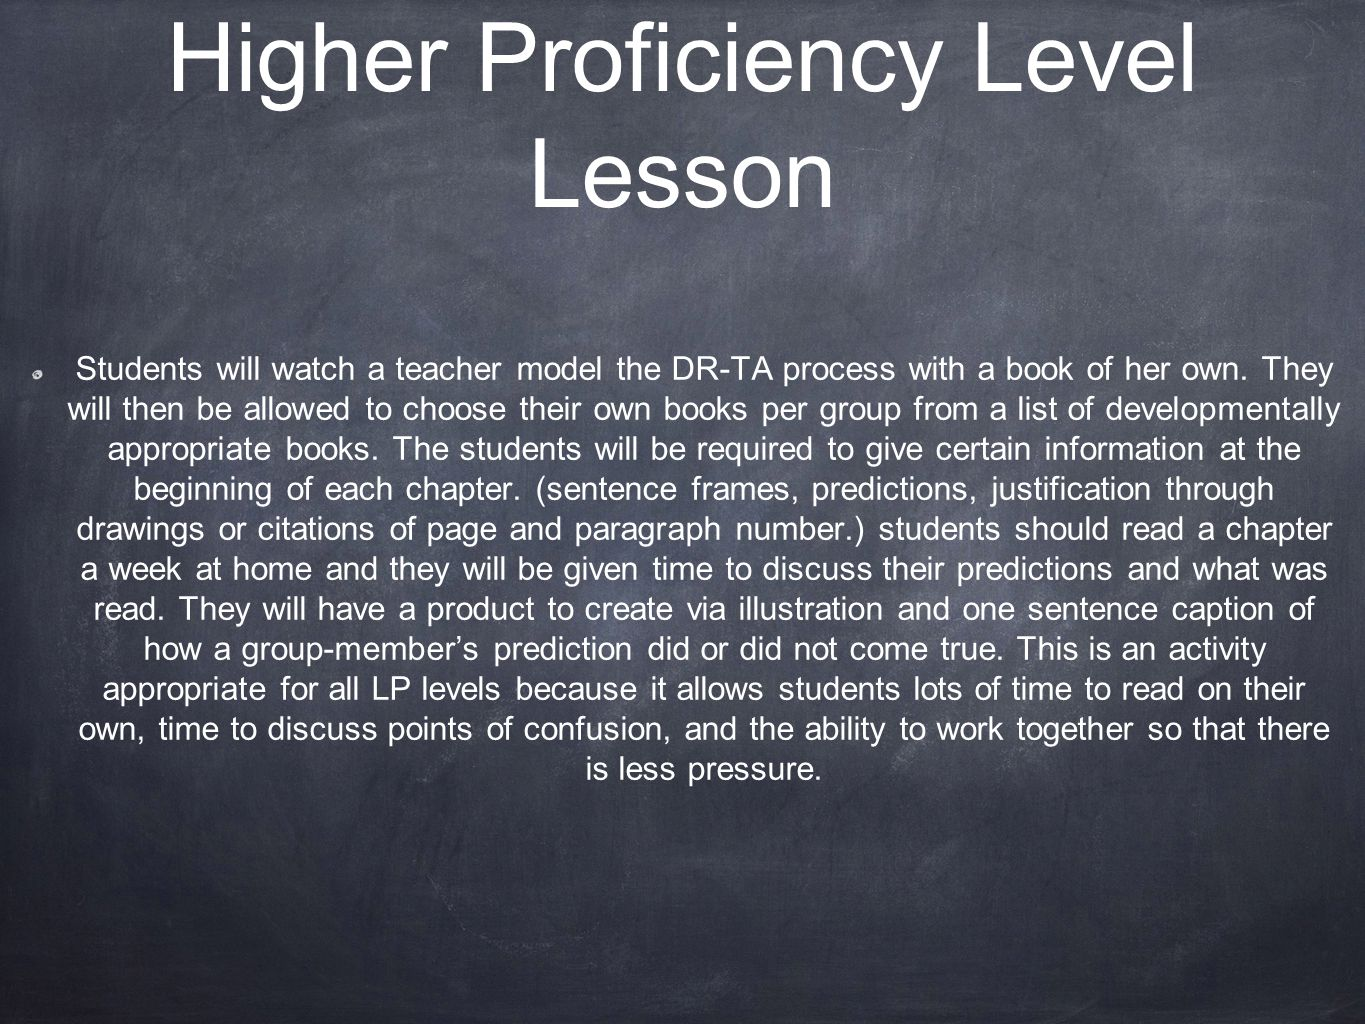 Higher Proficiency Level Lesson